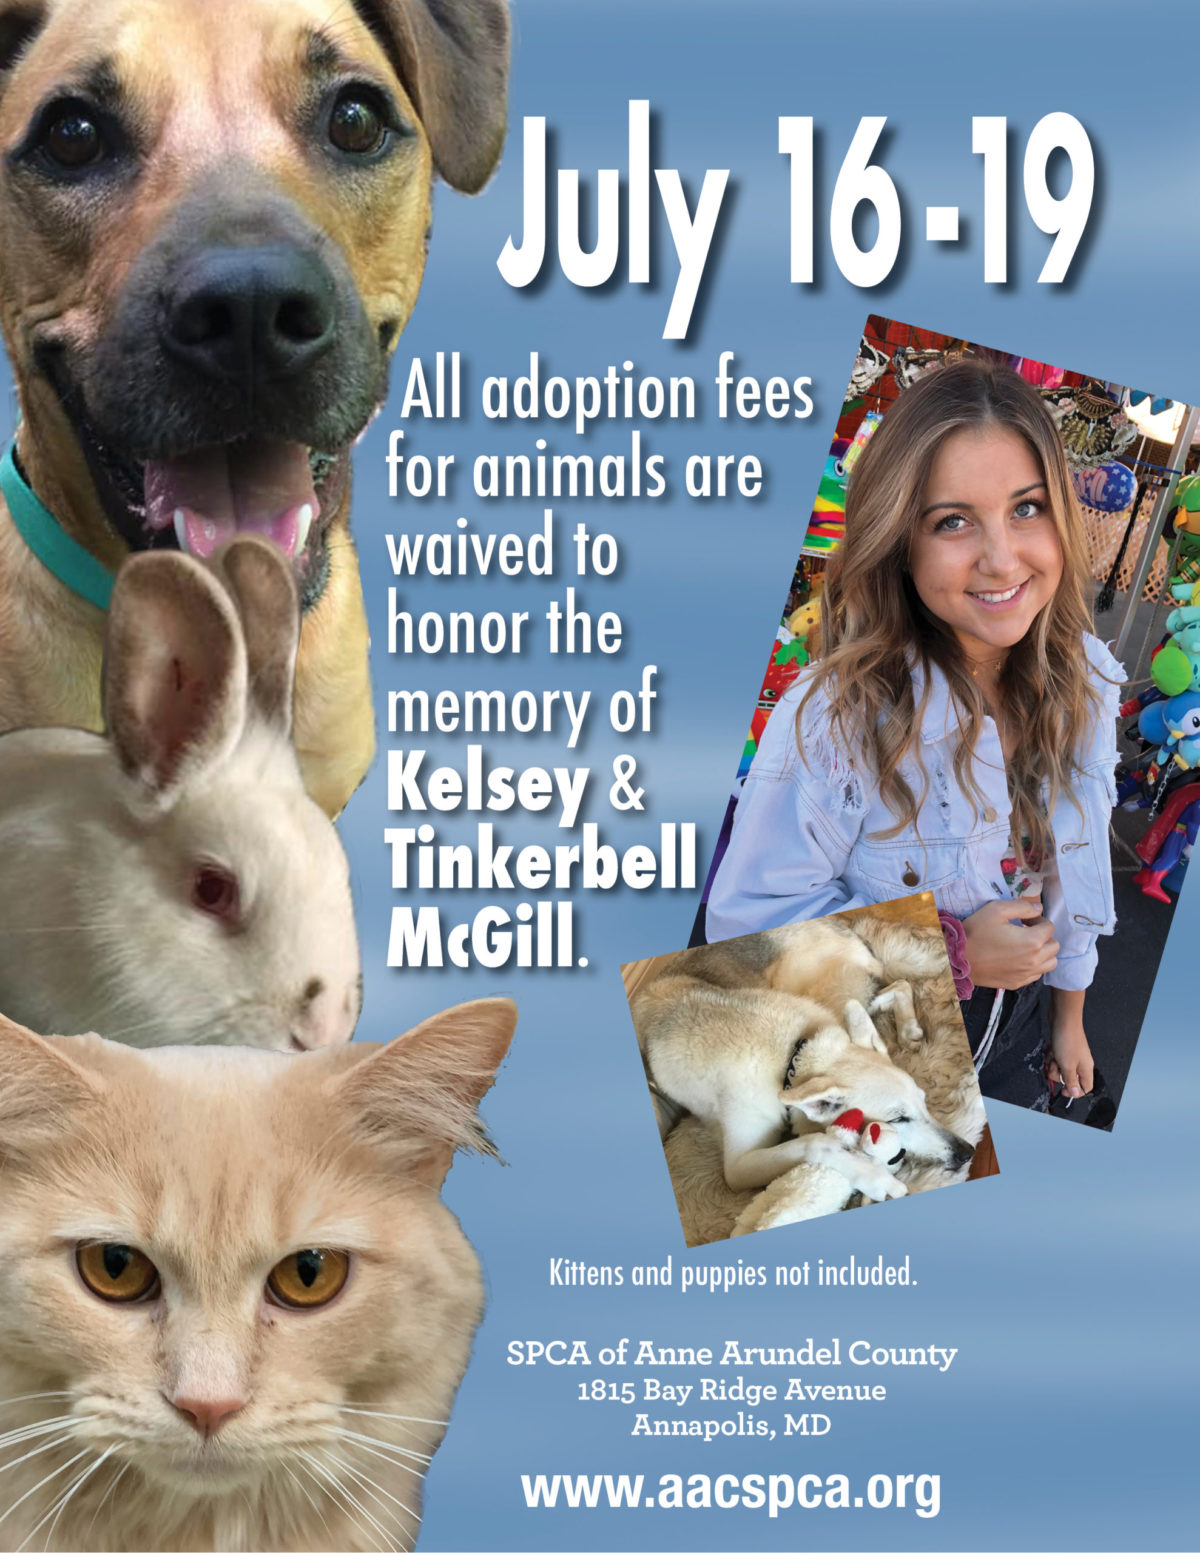 Adoption Fees Covered 7/16-19